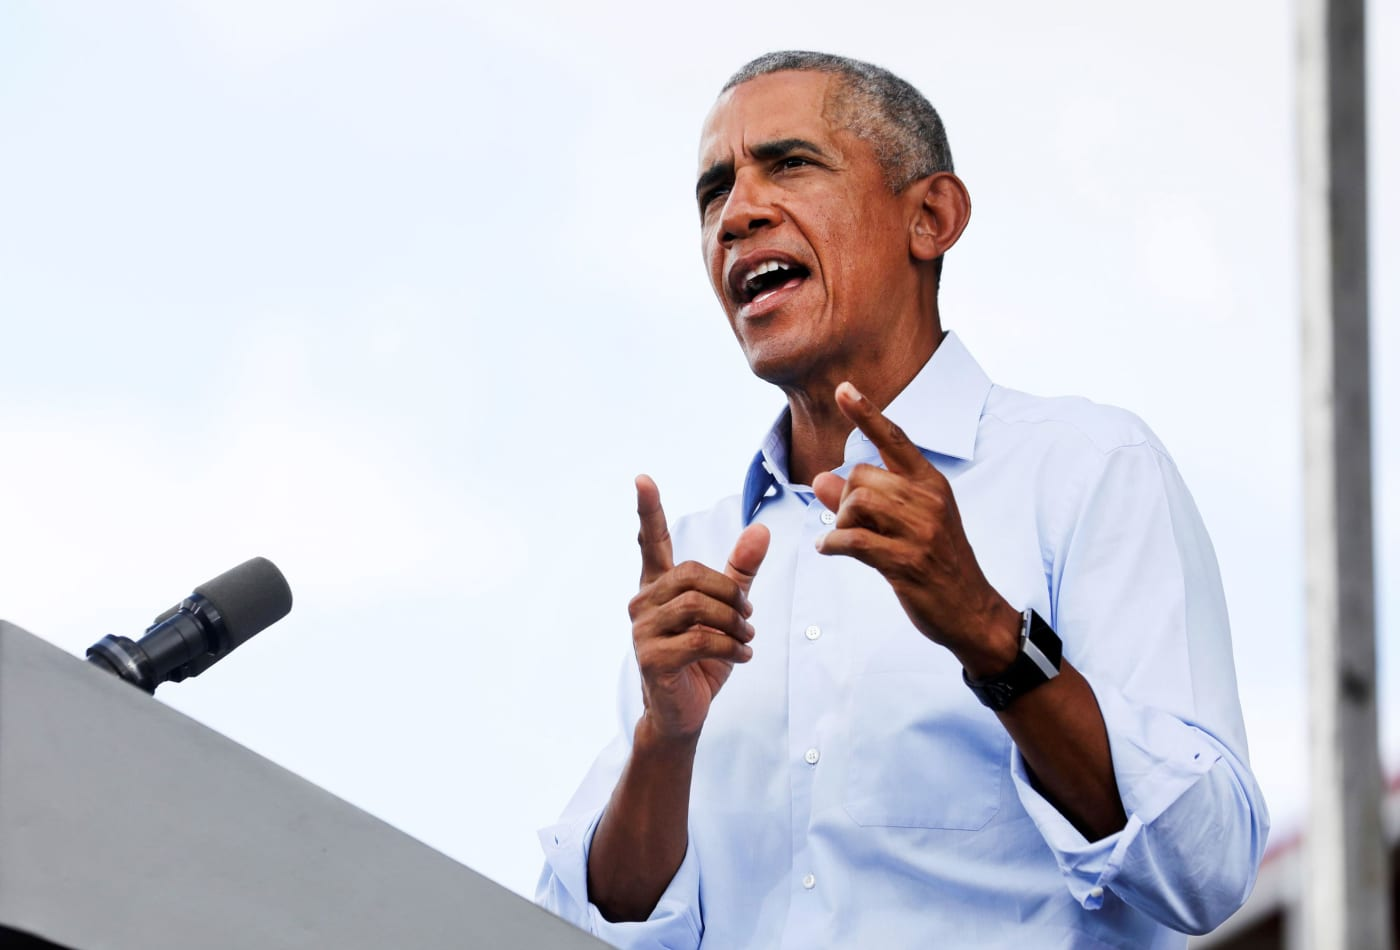 Obama says social media companies 'are making editorial choices, whether they've buried them in algorithms or not'